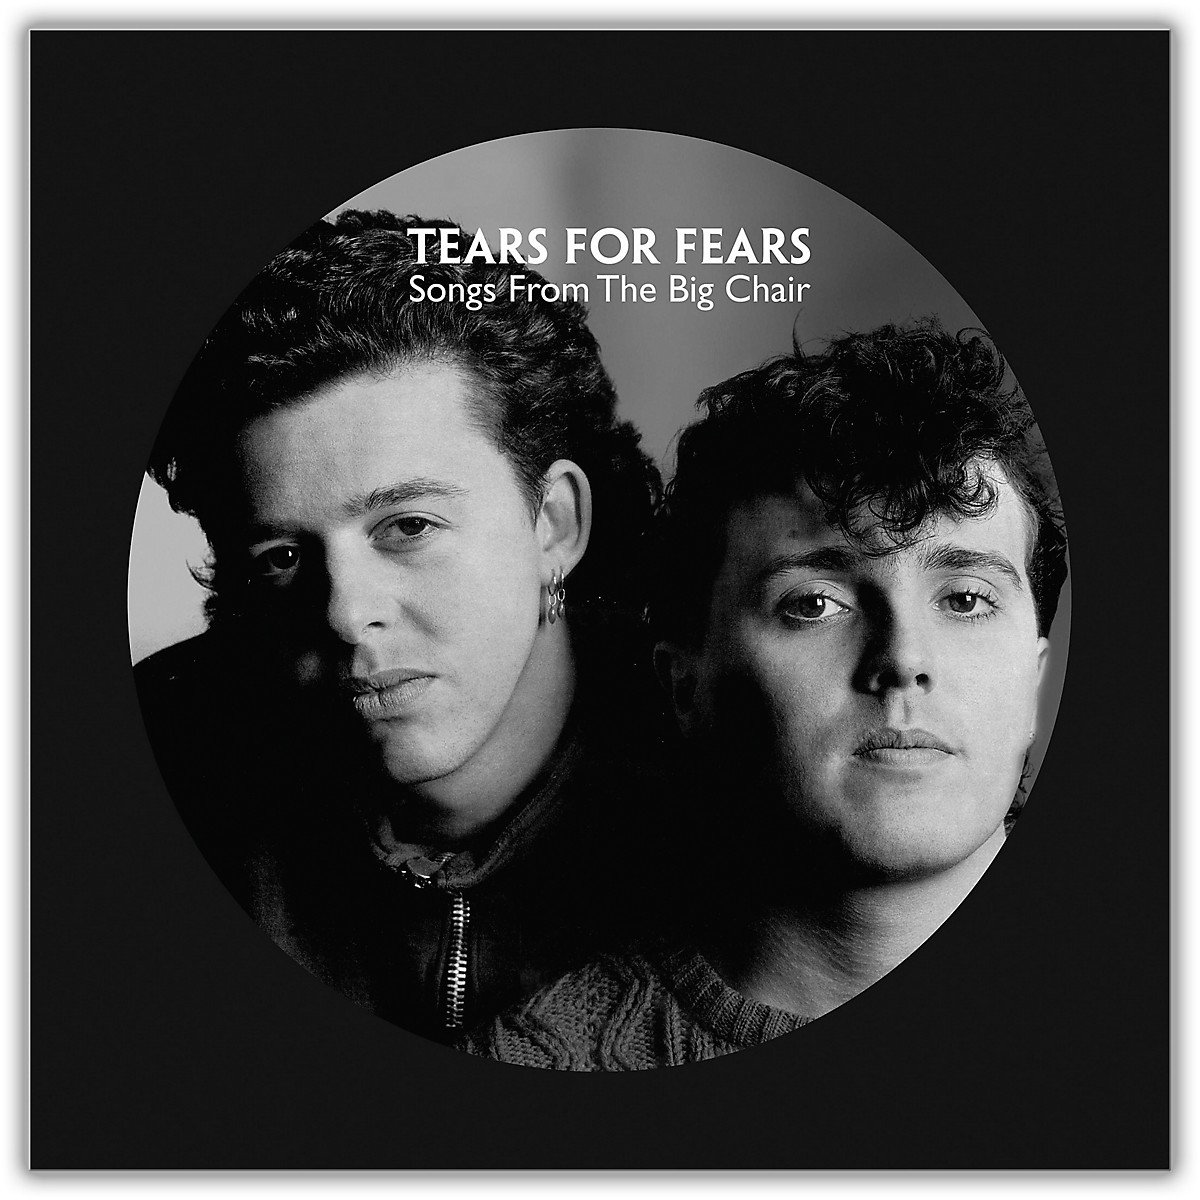 Universal Music Group Tears For Fears - Songs from the Big Chair [Picture Disc]